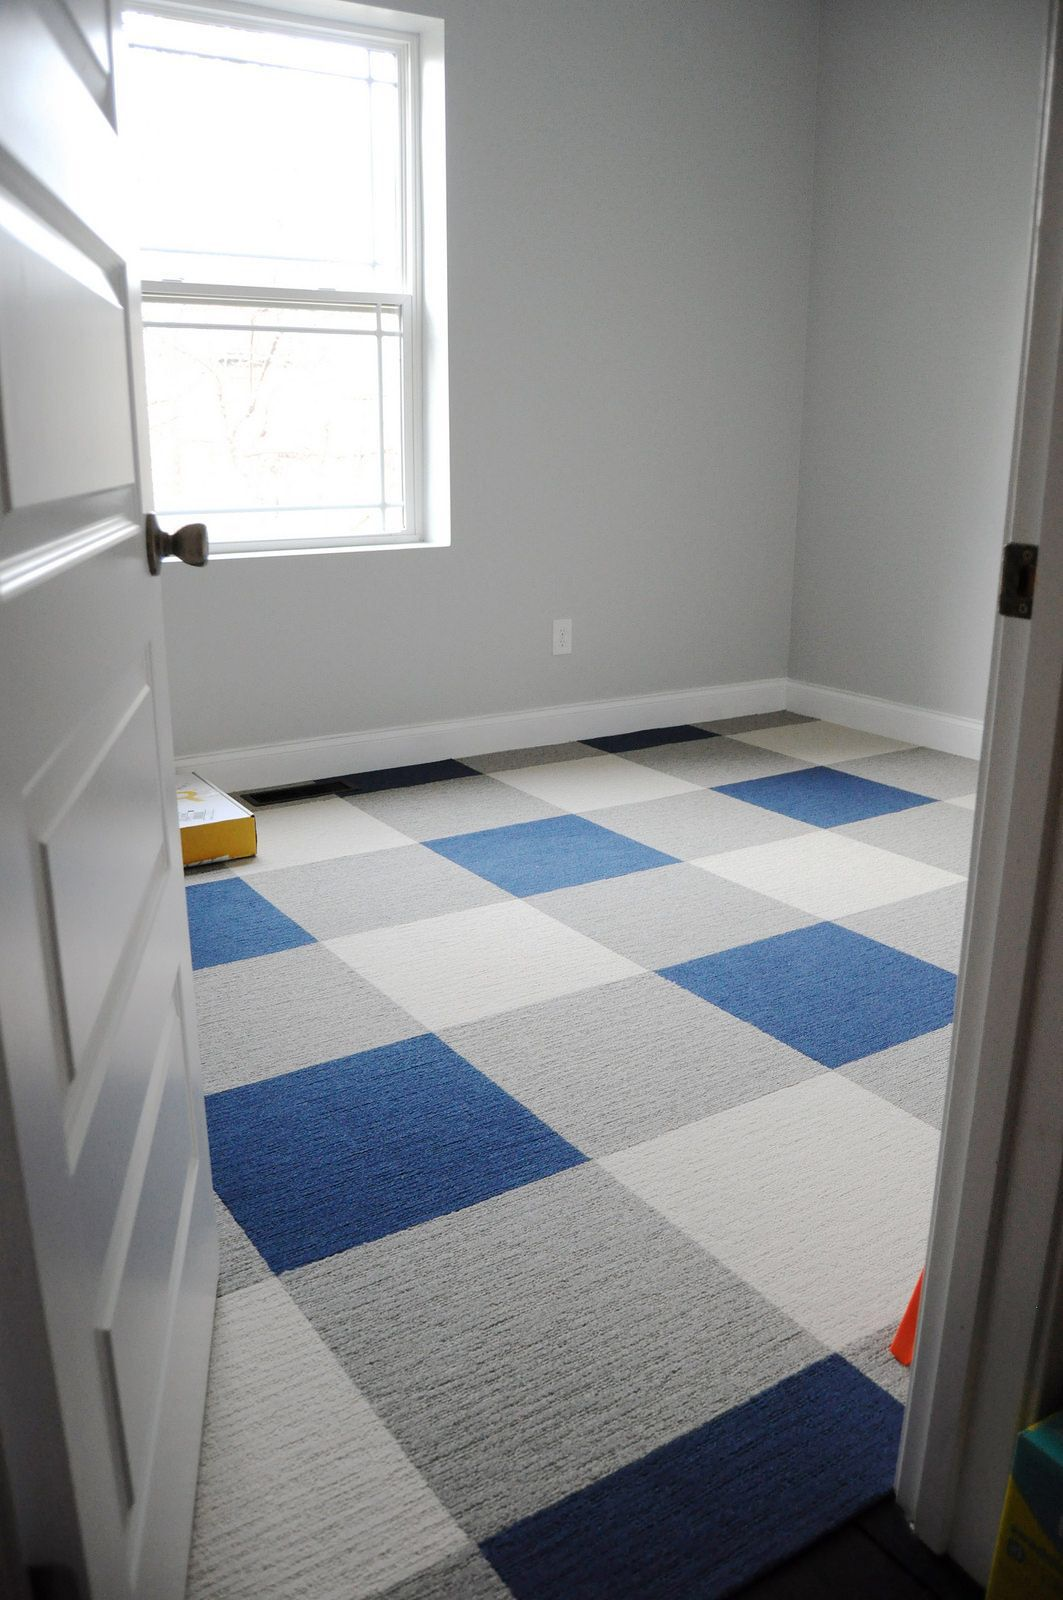 Buffalo Plaid Floor Using Carpet Tiles With Images Tile